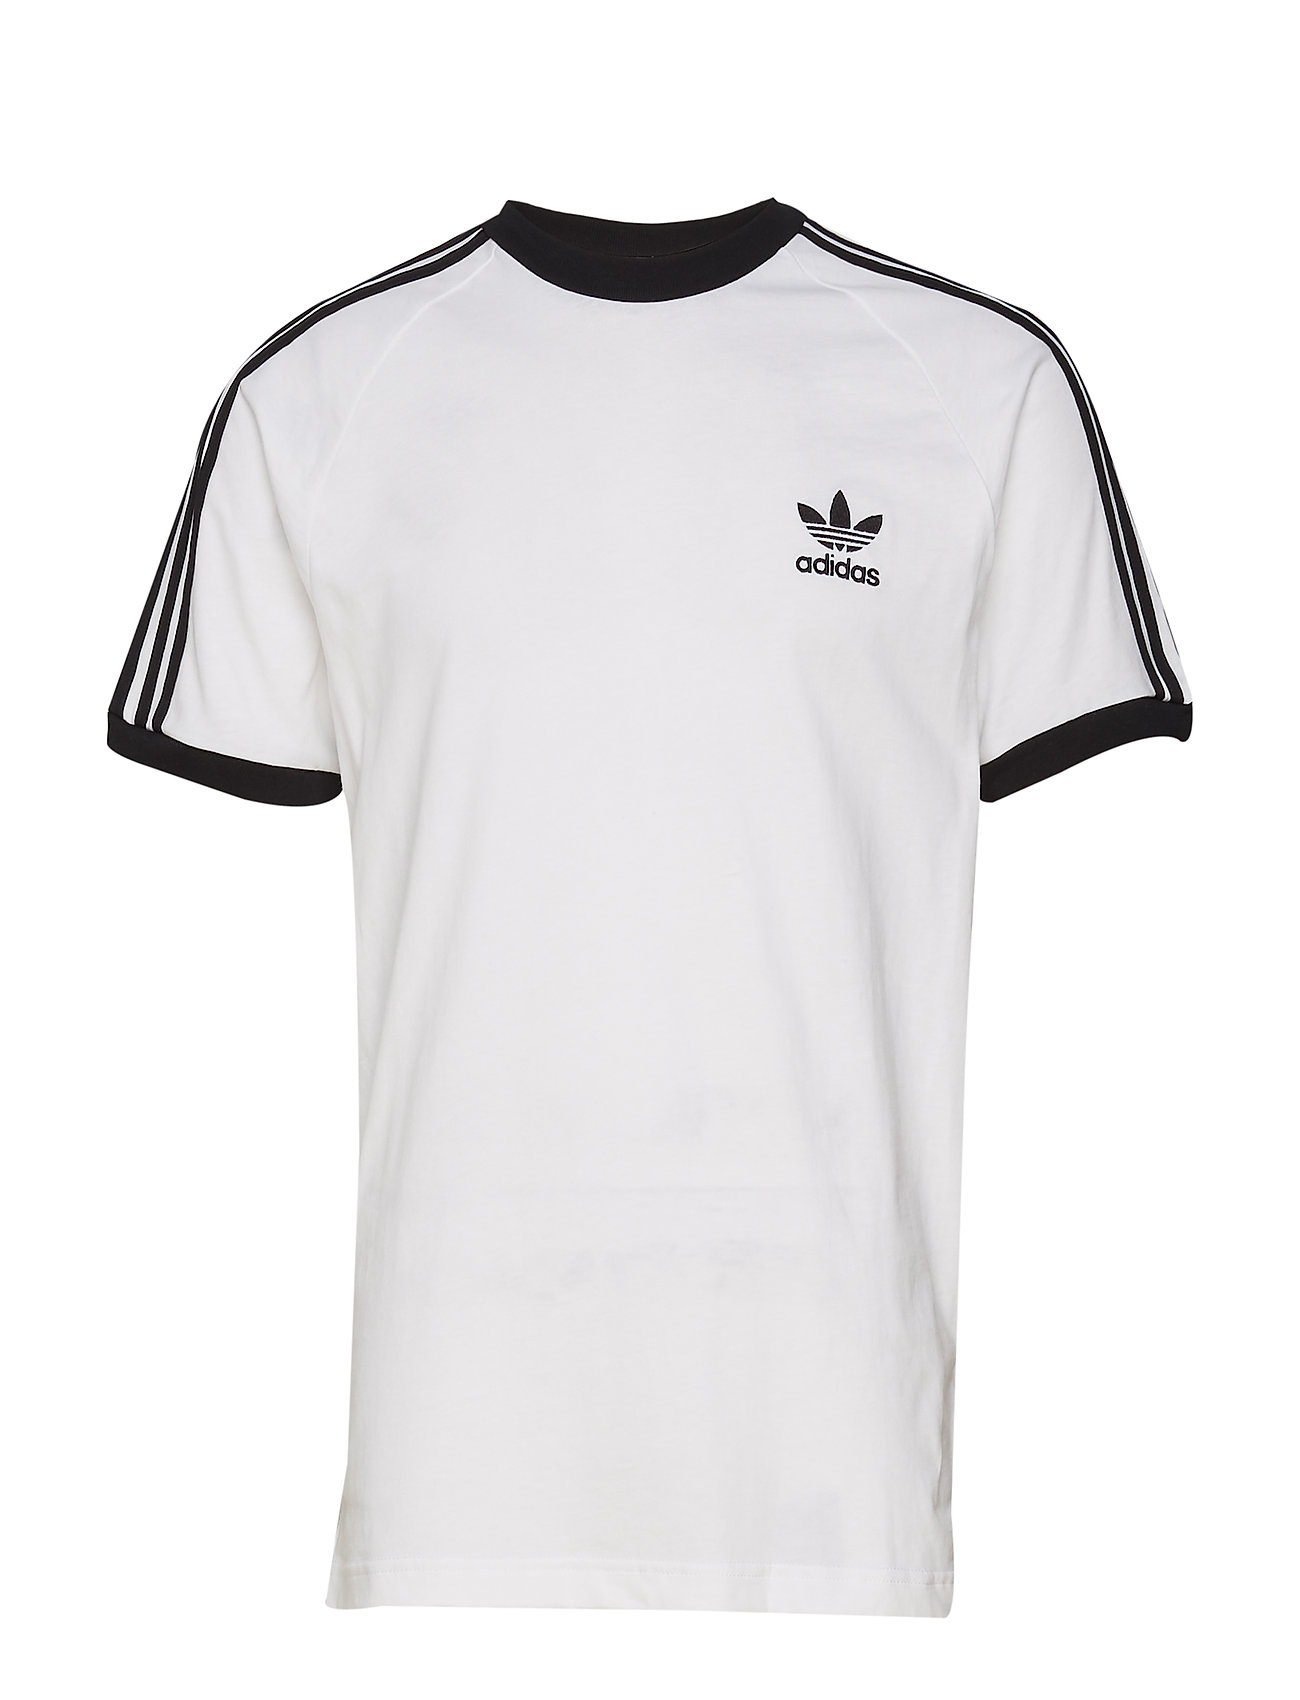 adidas Originals 3-STRIPES TEE - WHITE